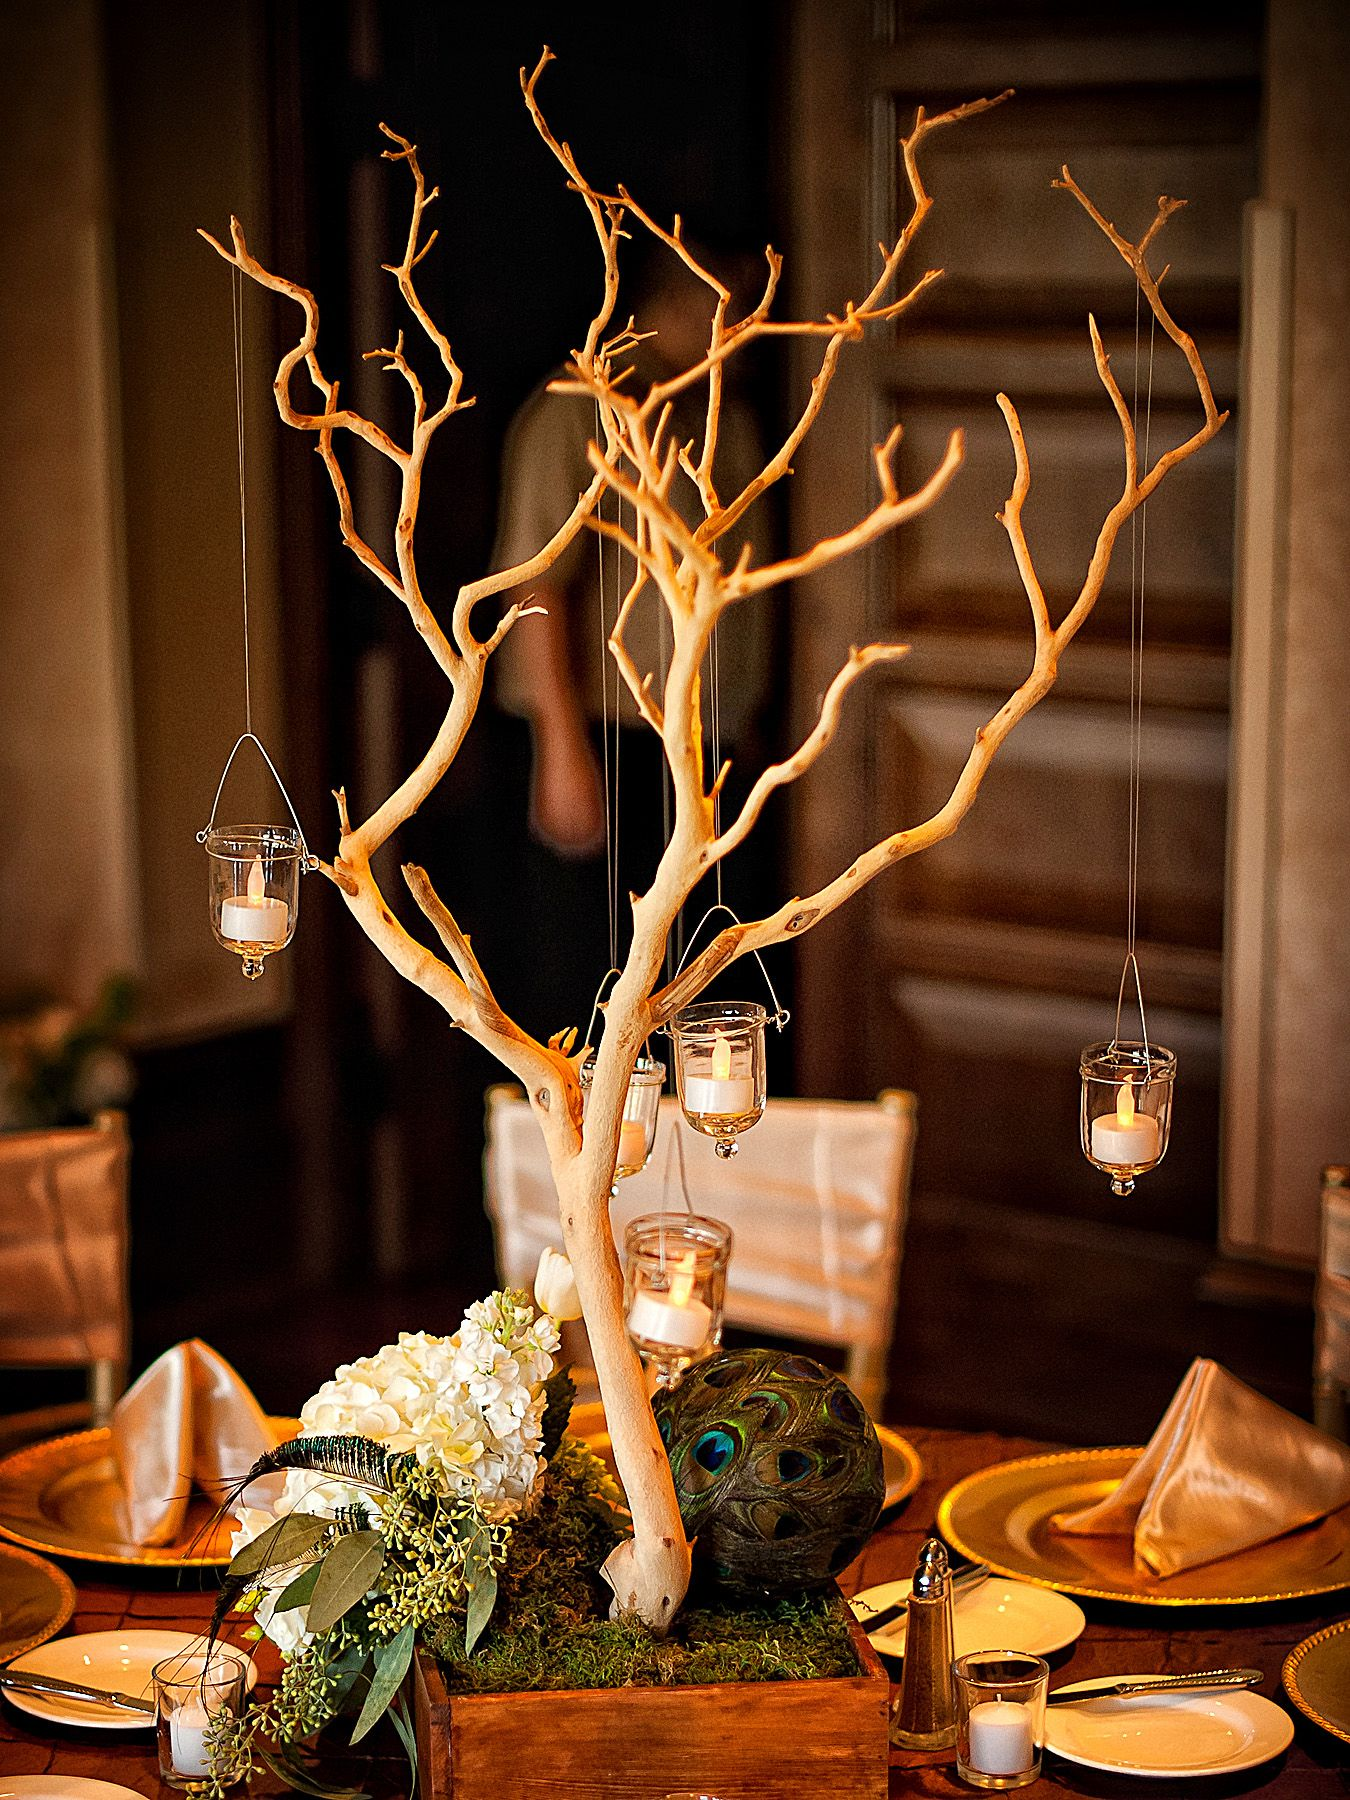 Branches With Hanging Candles Branch Centerpieces Wedding Wedding Table Settings Centerpieces Candle Wedding Centerpieces